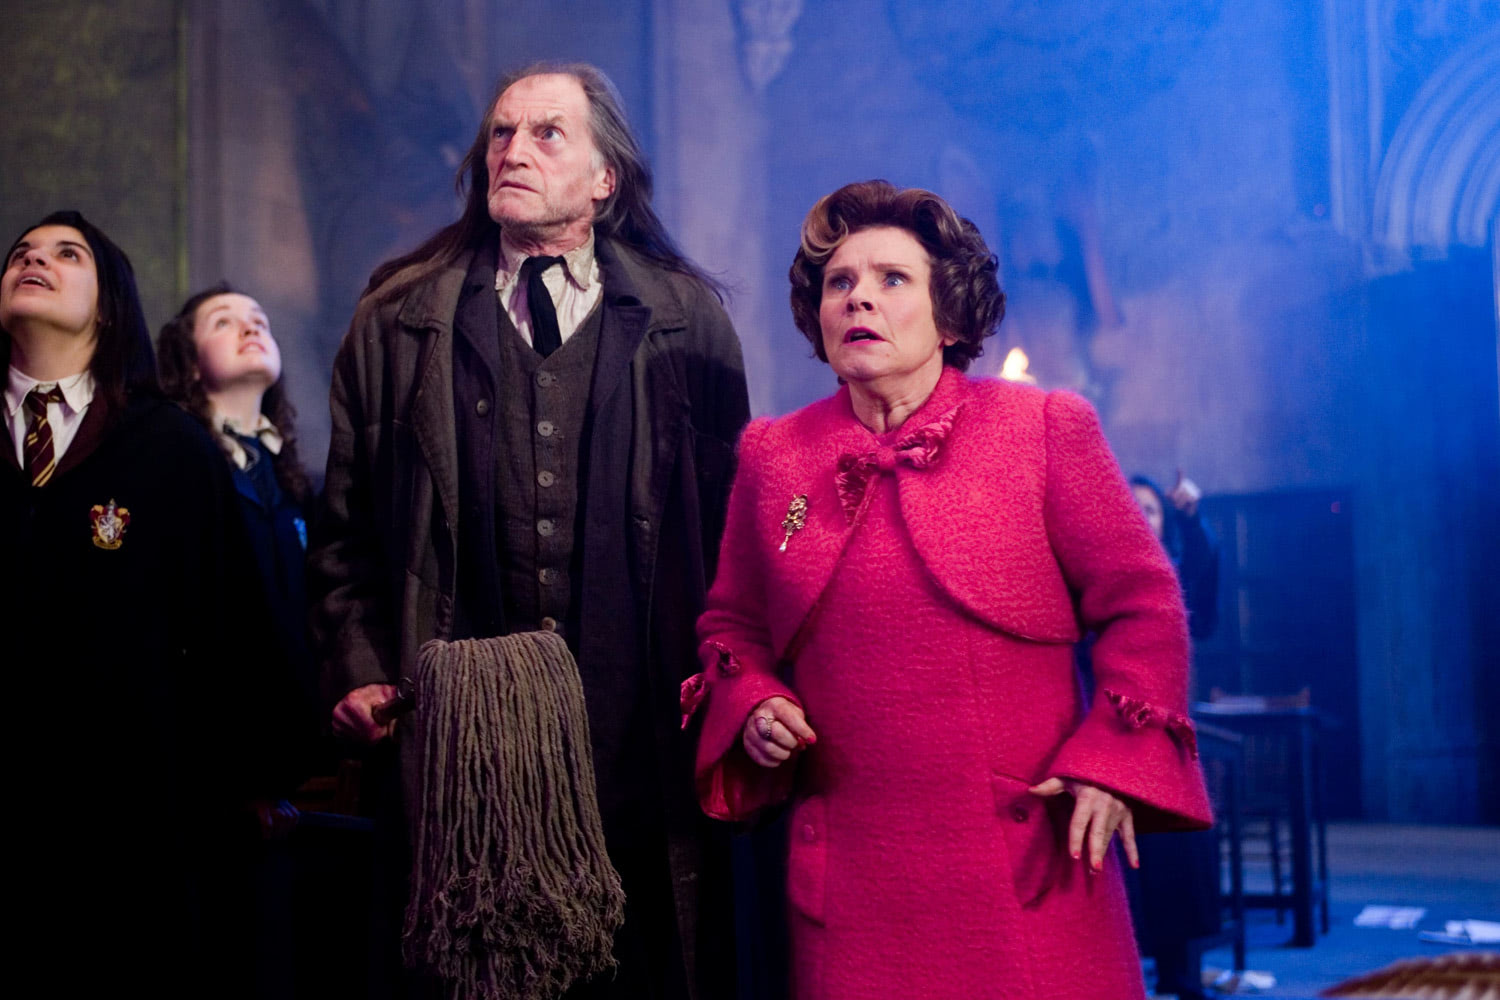 Umbridge and Filch after the firework damage